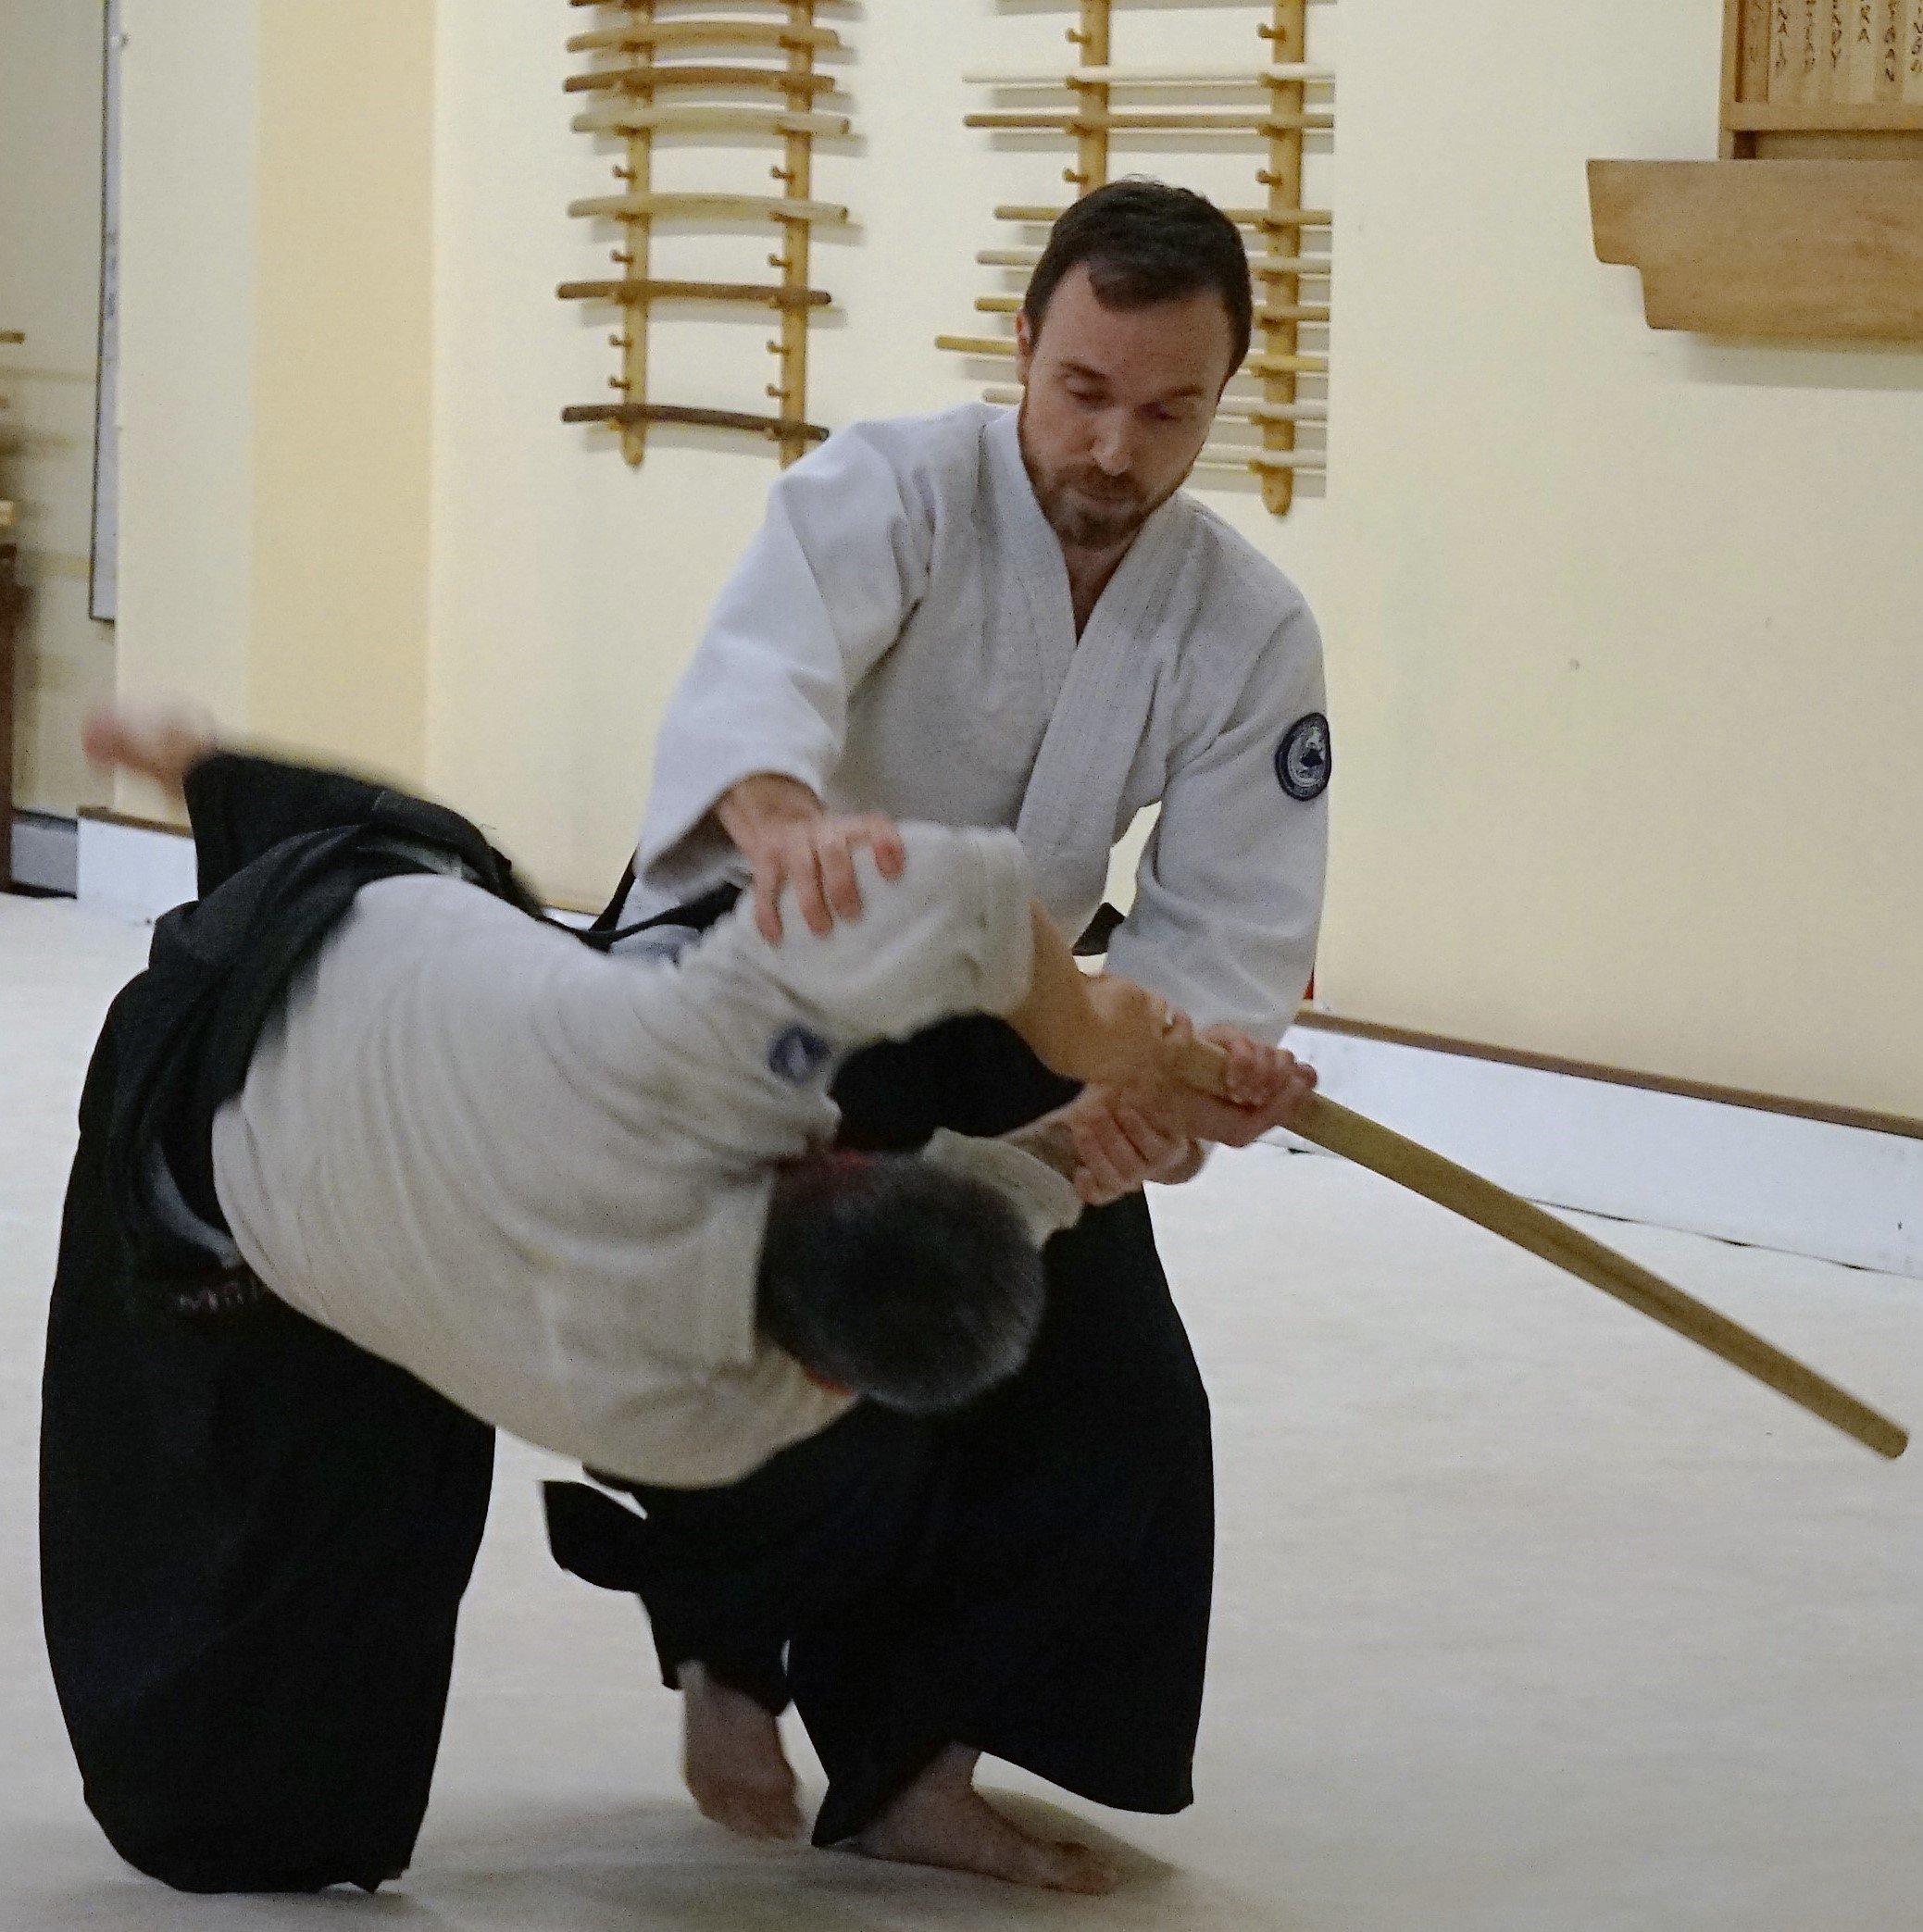 Martial Arts Aikido Jiu Jitsu Instructors At Tenzan Aikido Seattle